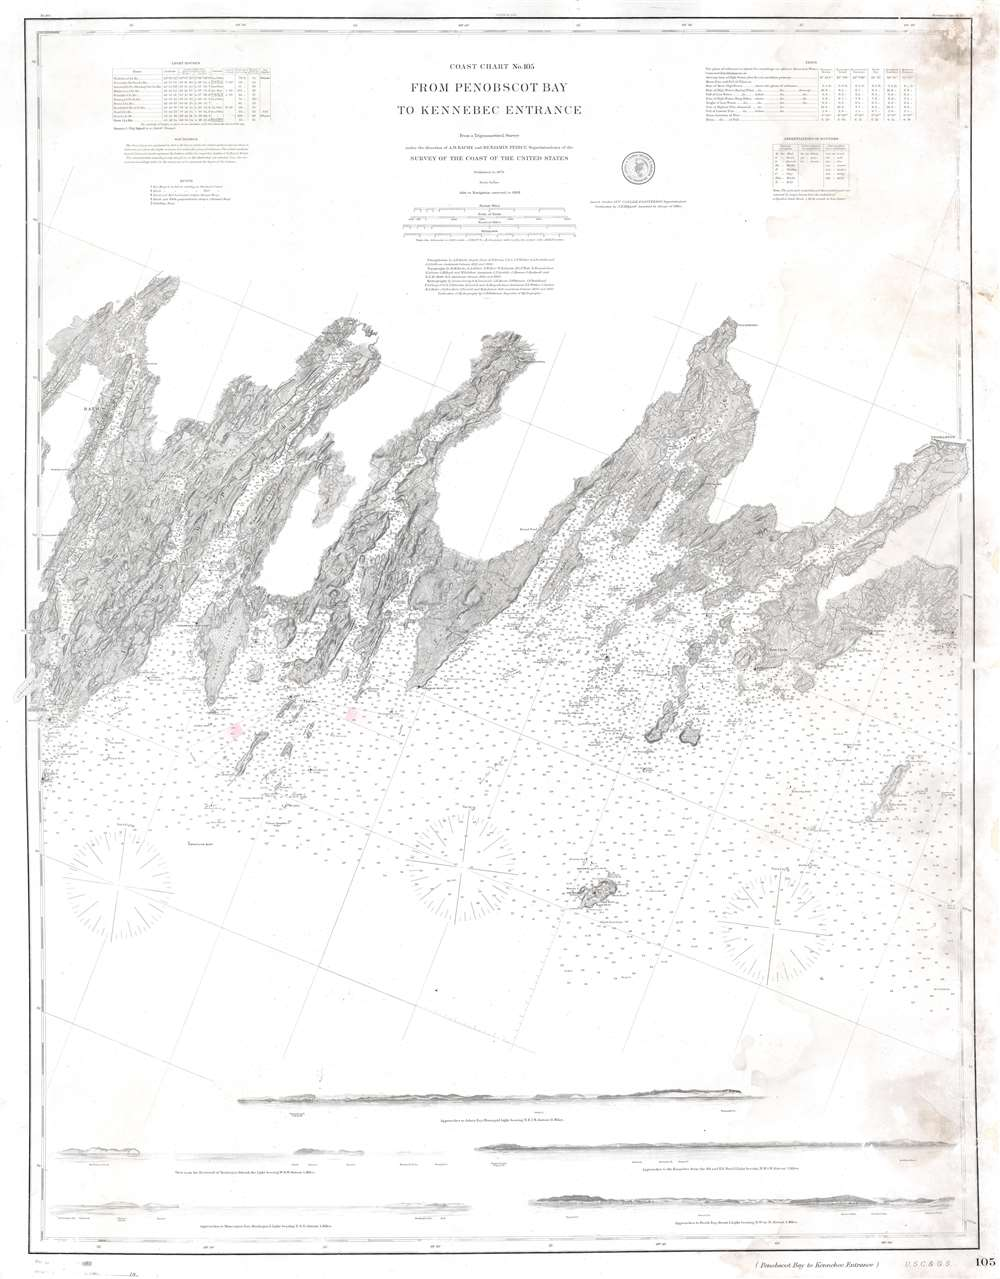 Coast Chart No. 105 From Penobscot Bay to Kennebec Entrance. - Main View